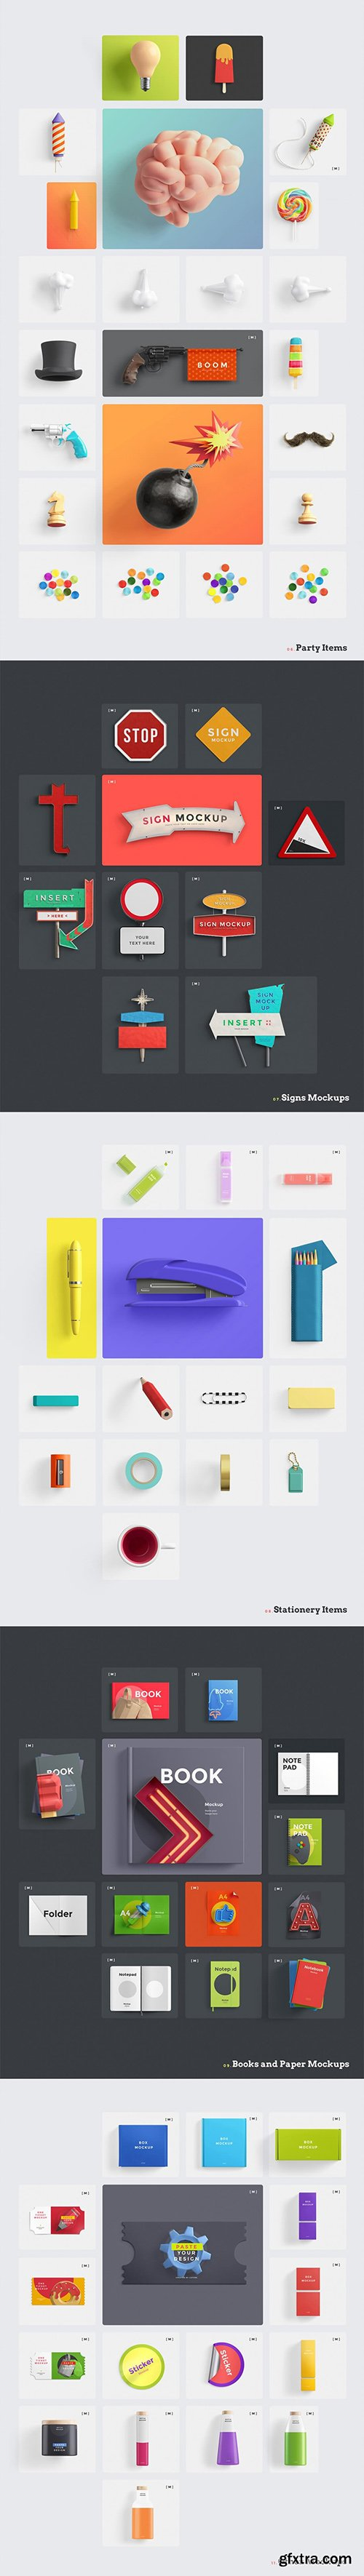 OhMy! Designer's Toolkit Easily Build Creative Scenes in Photoshop